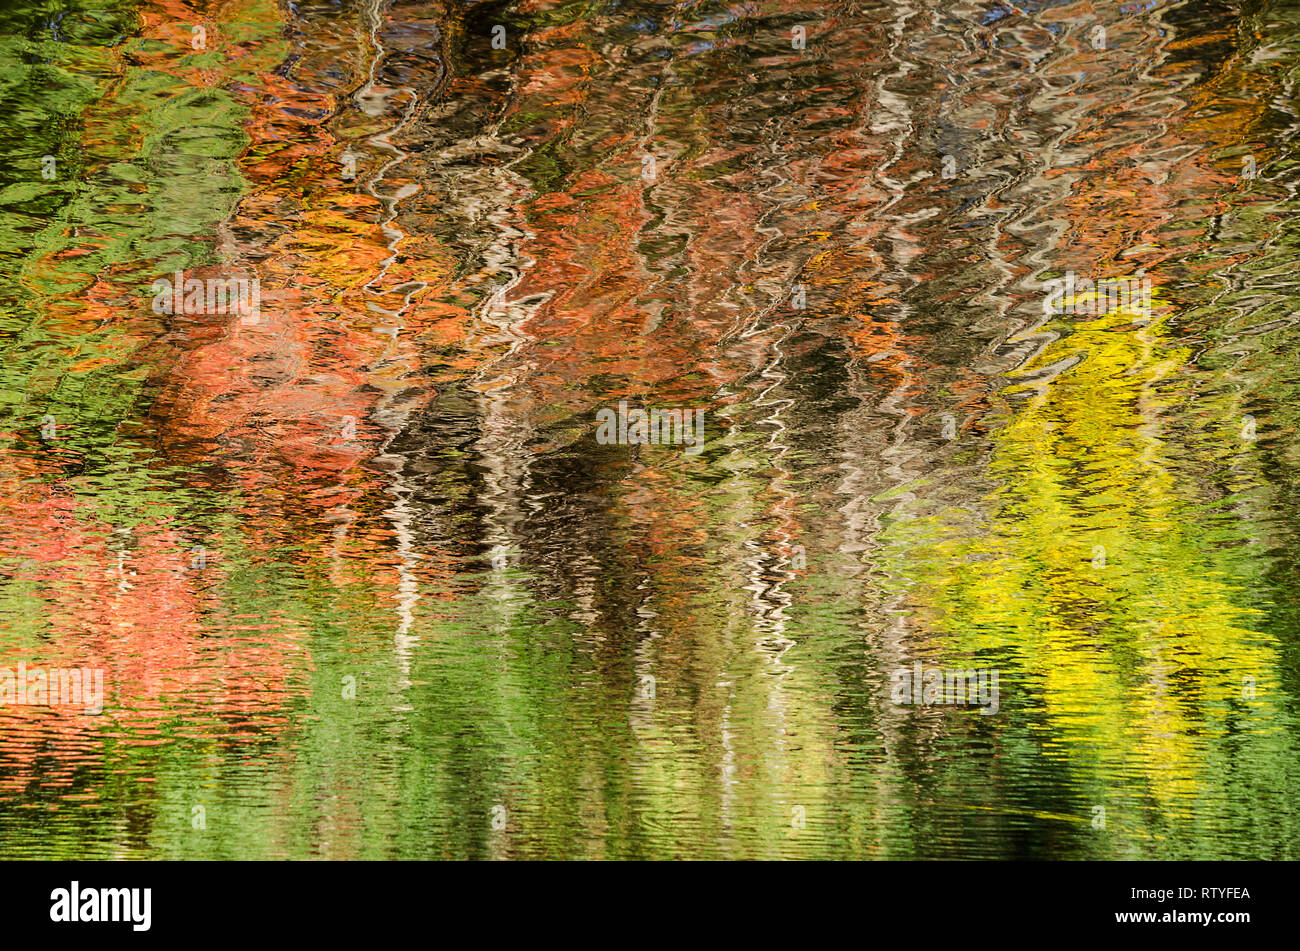 Abstract photograph of coloured trees reflected in rippled water Peterborough Ontario Canada - Stock Image